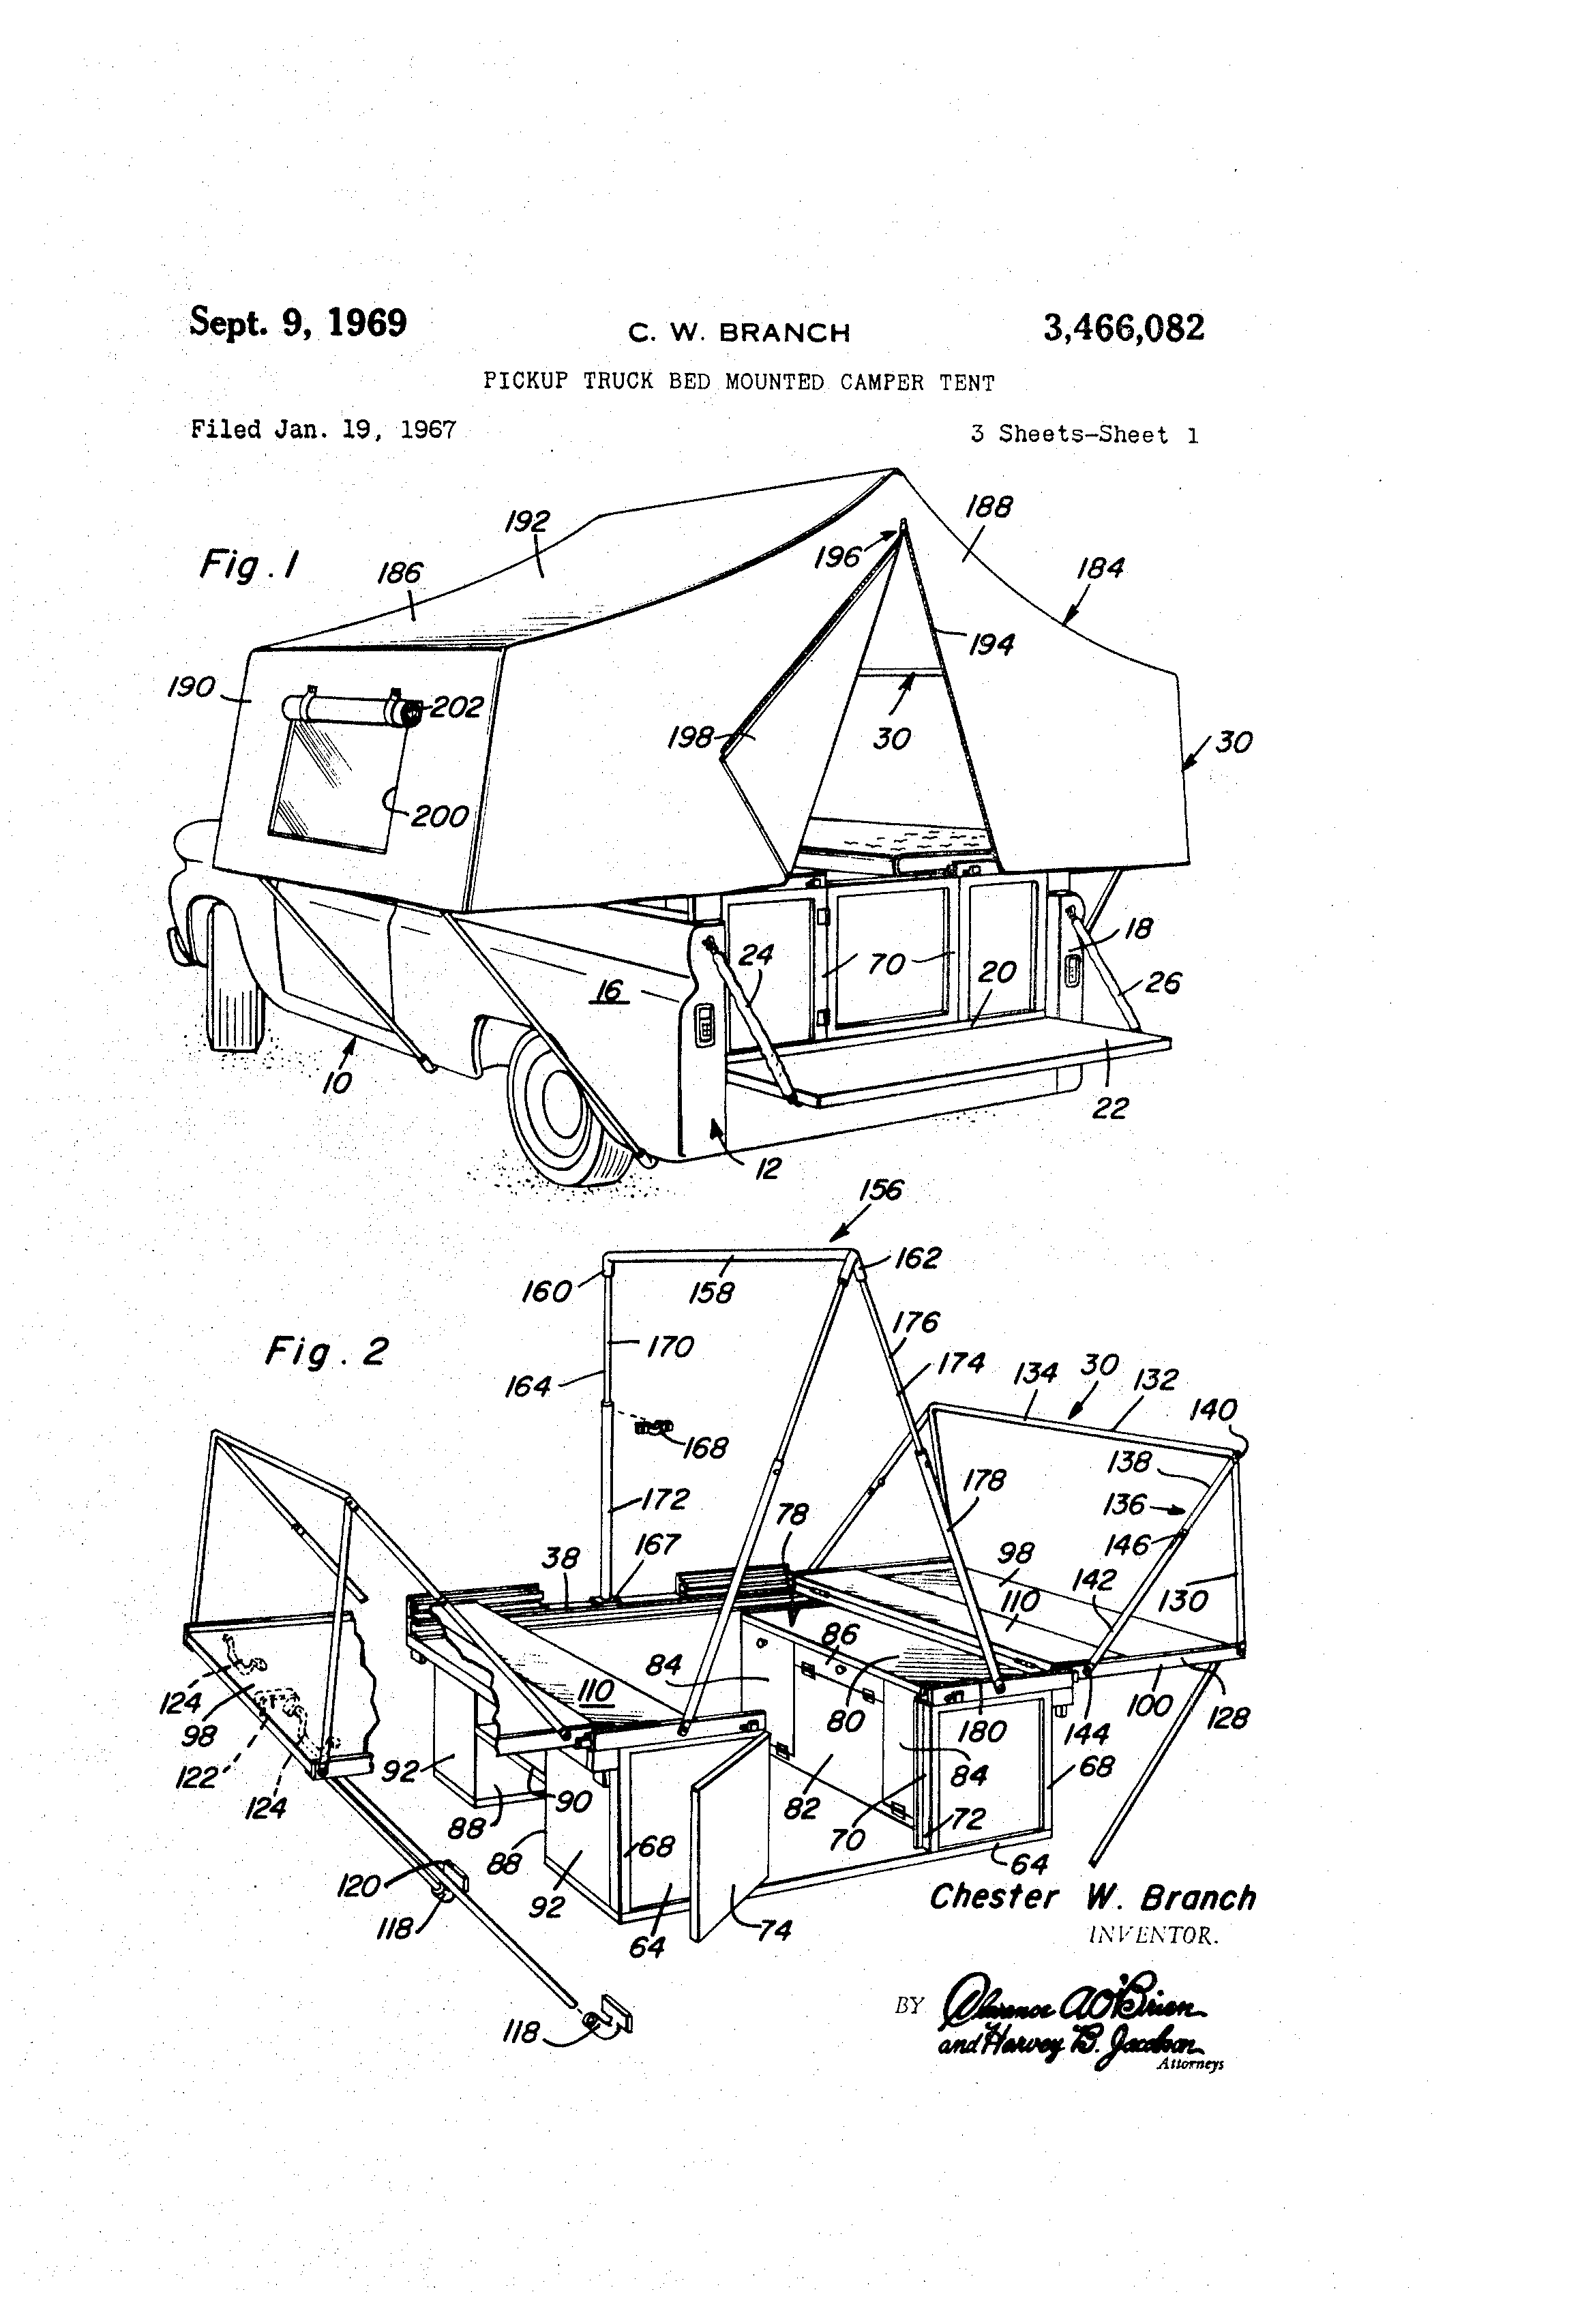 Patent US3466082 - Pickup truck bed mounted camper tent - Google Patenter